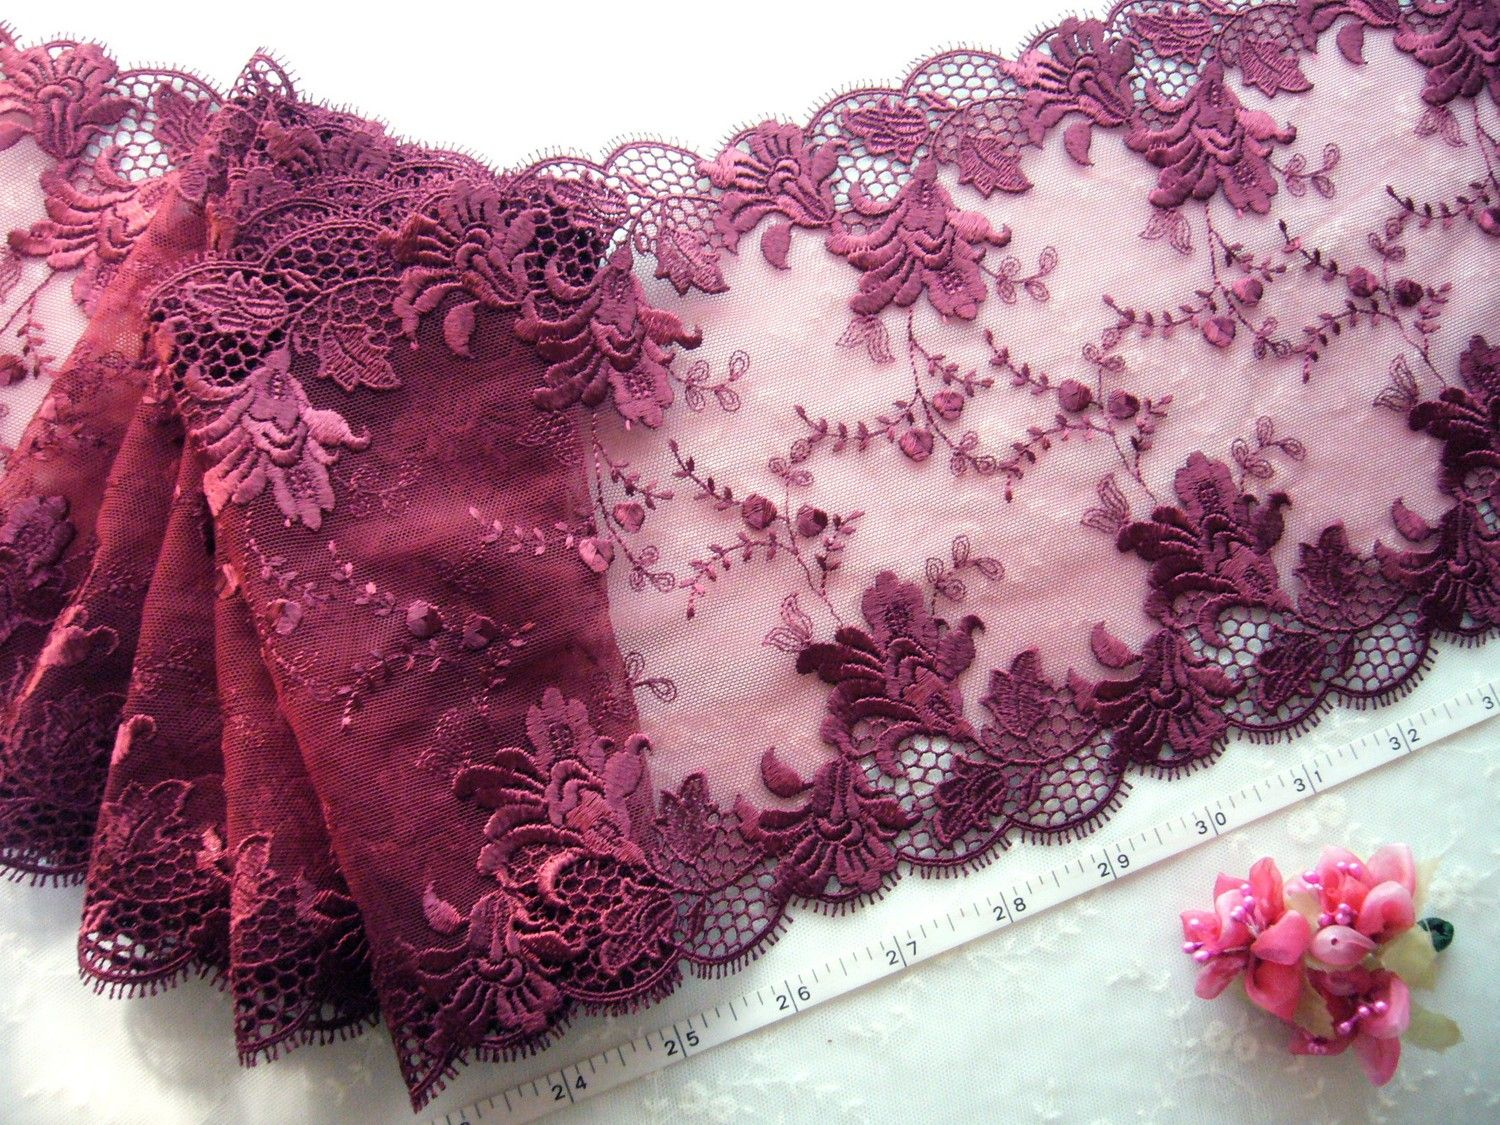 Red bridal lace embroidered floral tulle net trim 2 3/4 yards RD086. $10.25